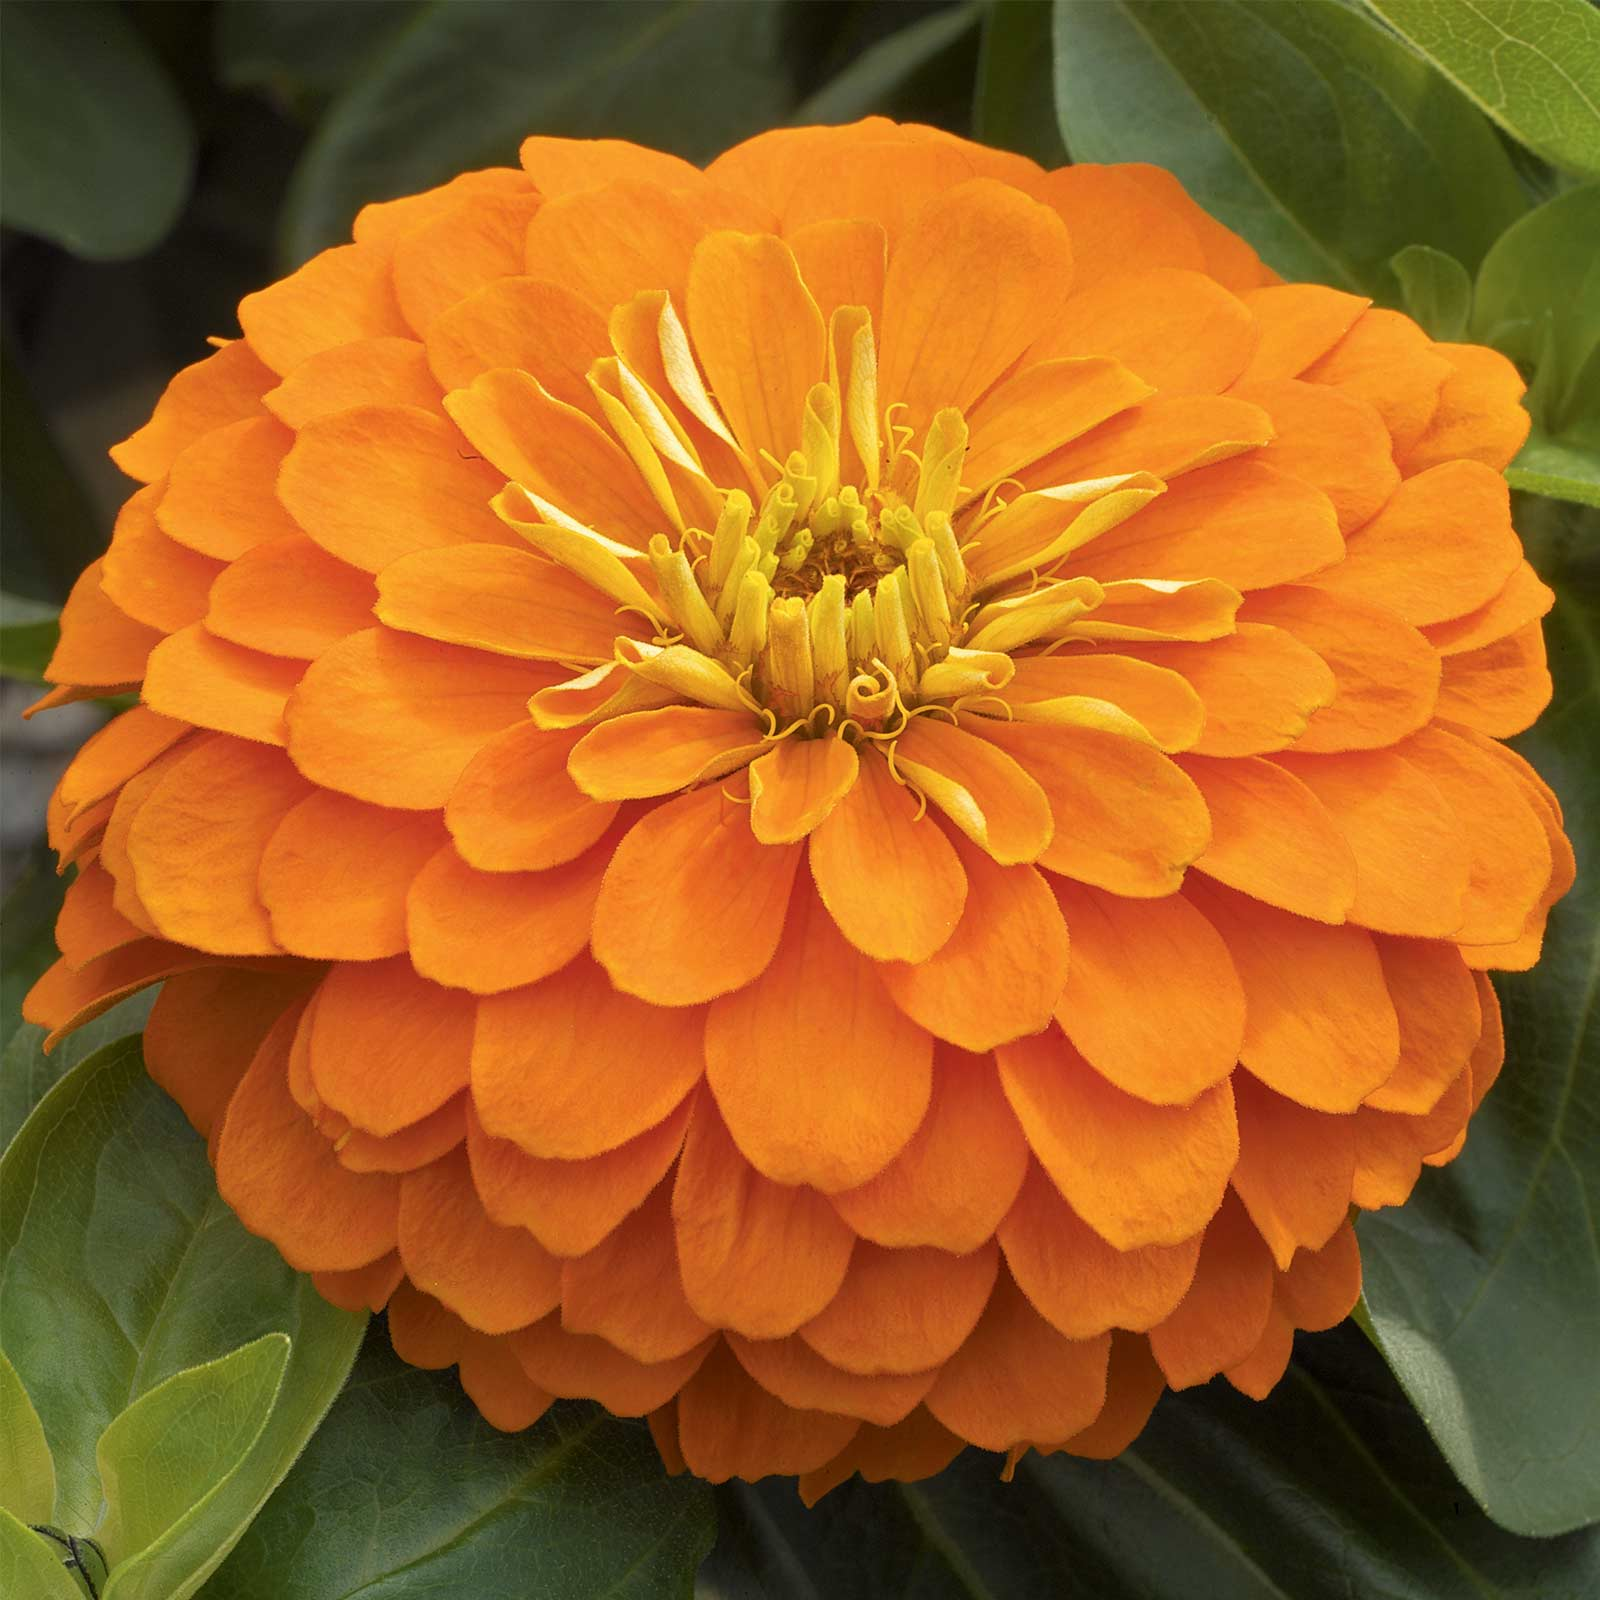 Zinnia Flower Garden Seeds - Magellan Series - Cherry - 100 Seeds - Annual Flower Gardening Seed